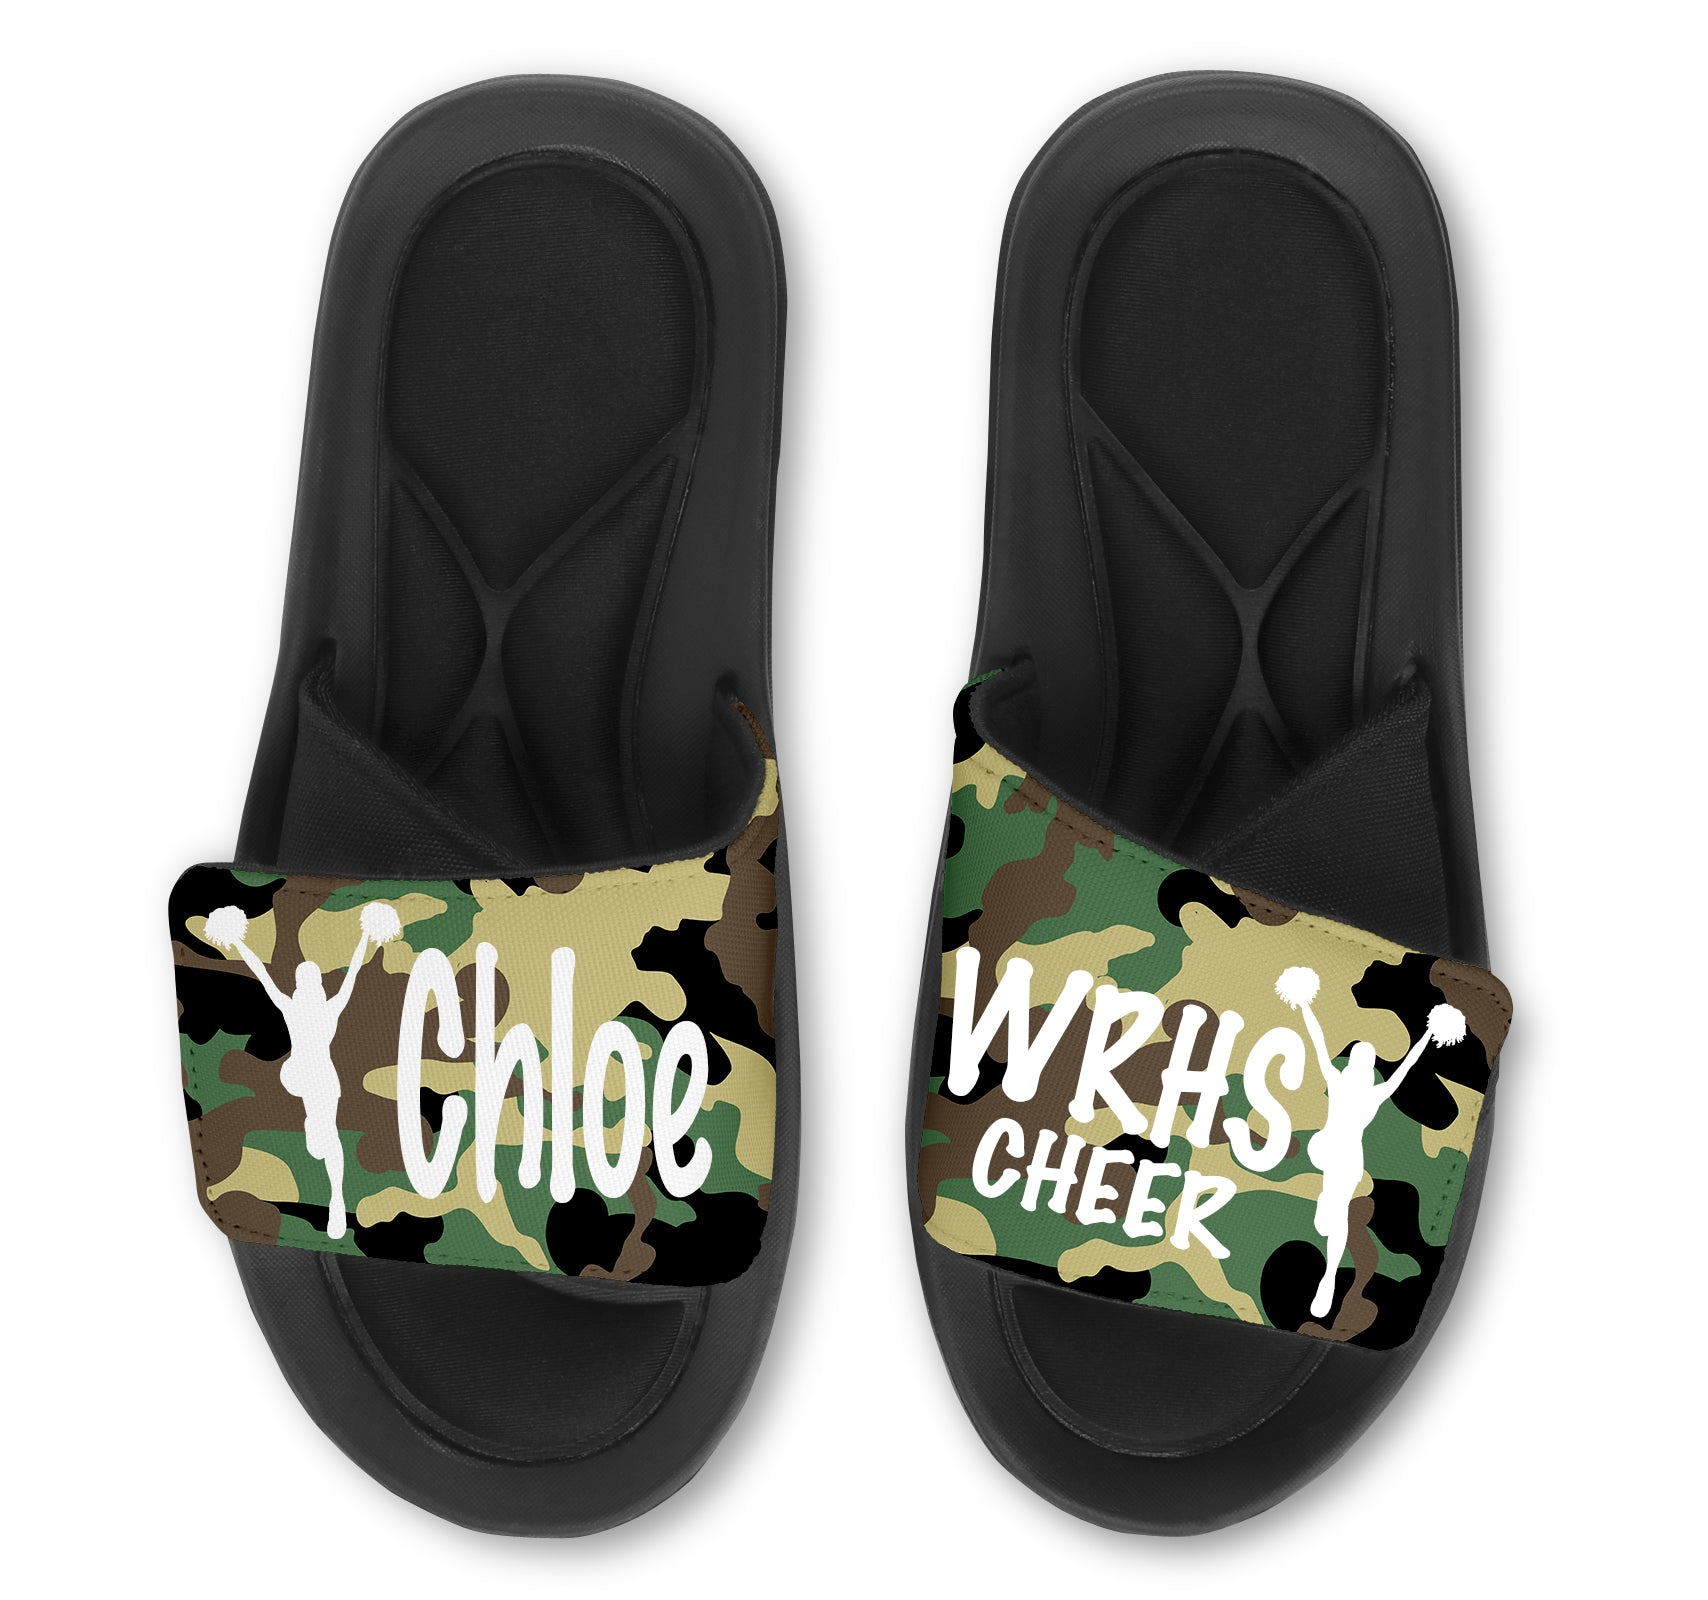 Cheerleading Custom Slides / Sandals - Camo